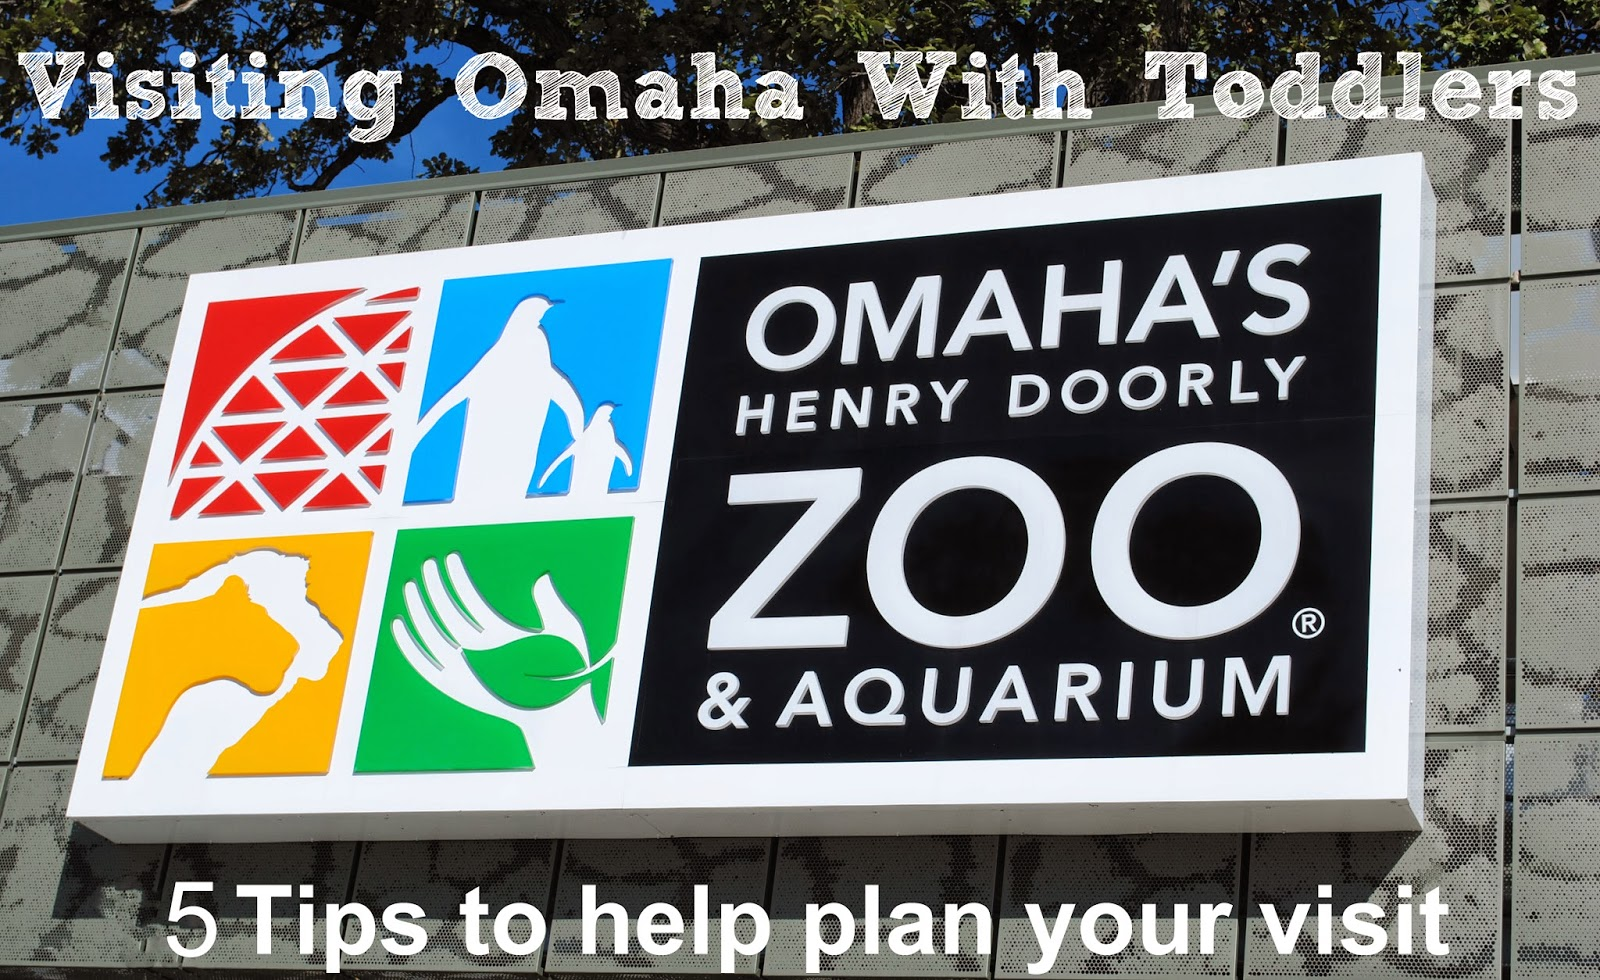 Visiting the Omaha Zoo with Kids: 5 Tips for Making the Most of your Trip